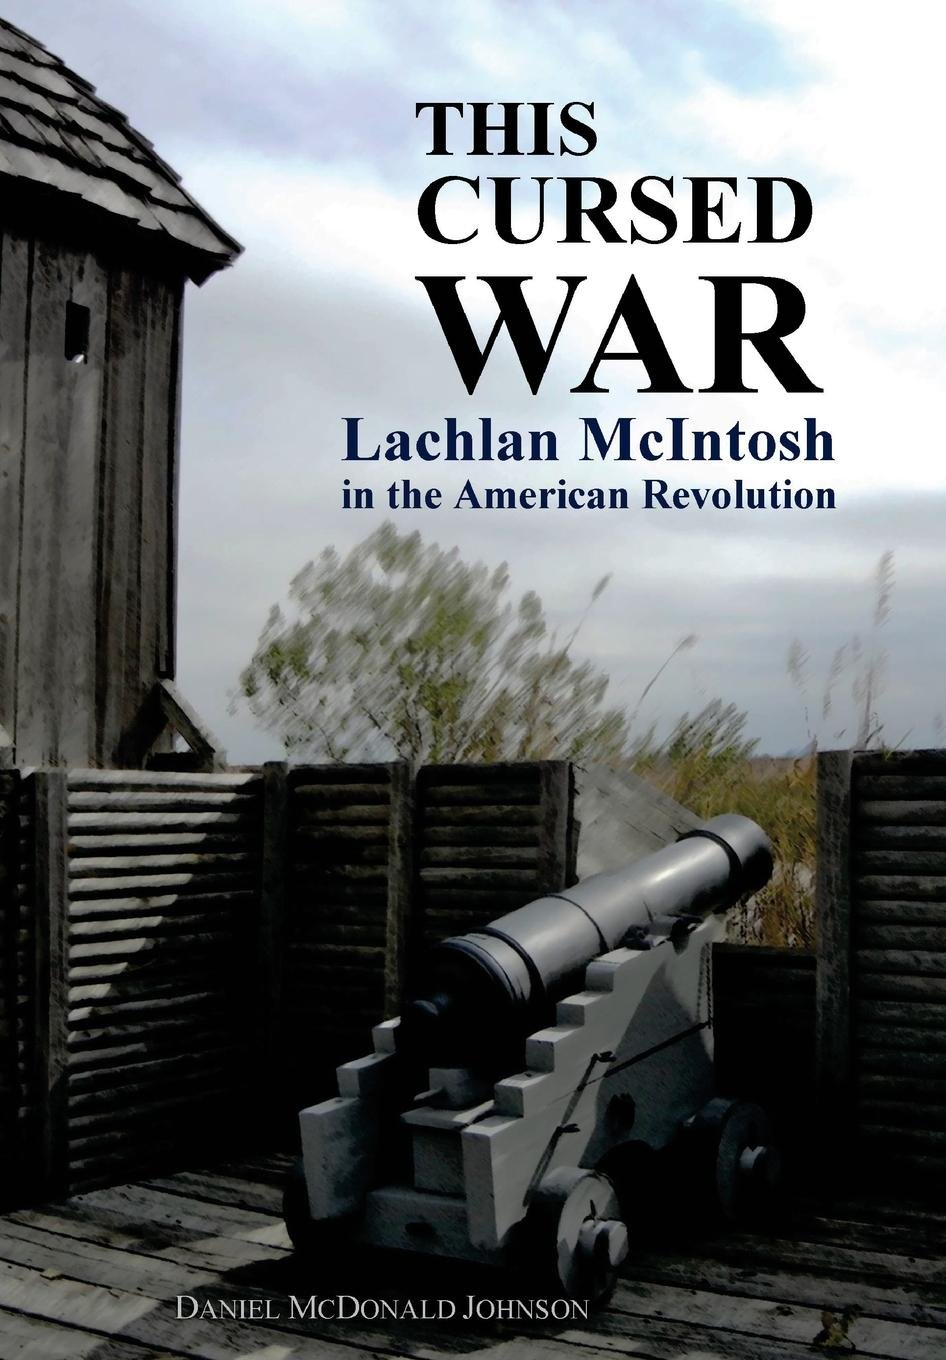 This Cursed War: Lachlan McIntosh in the American Revolution